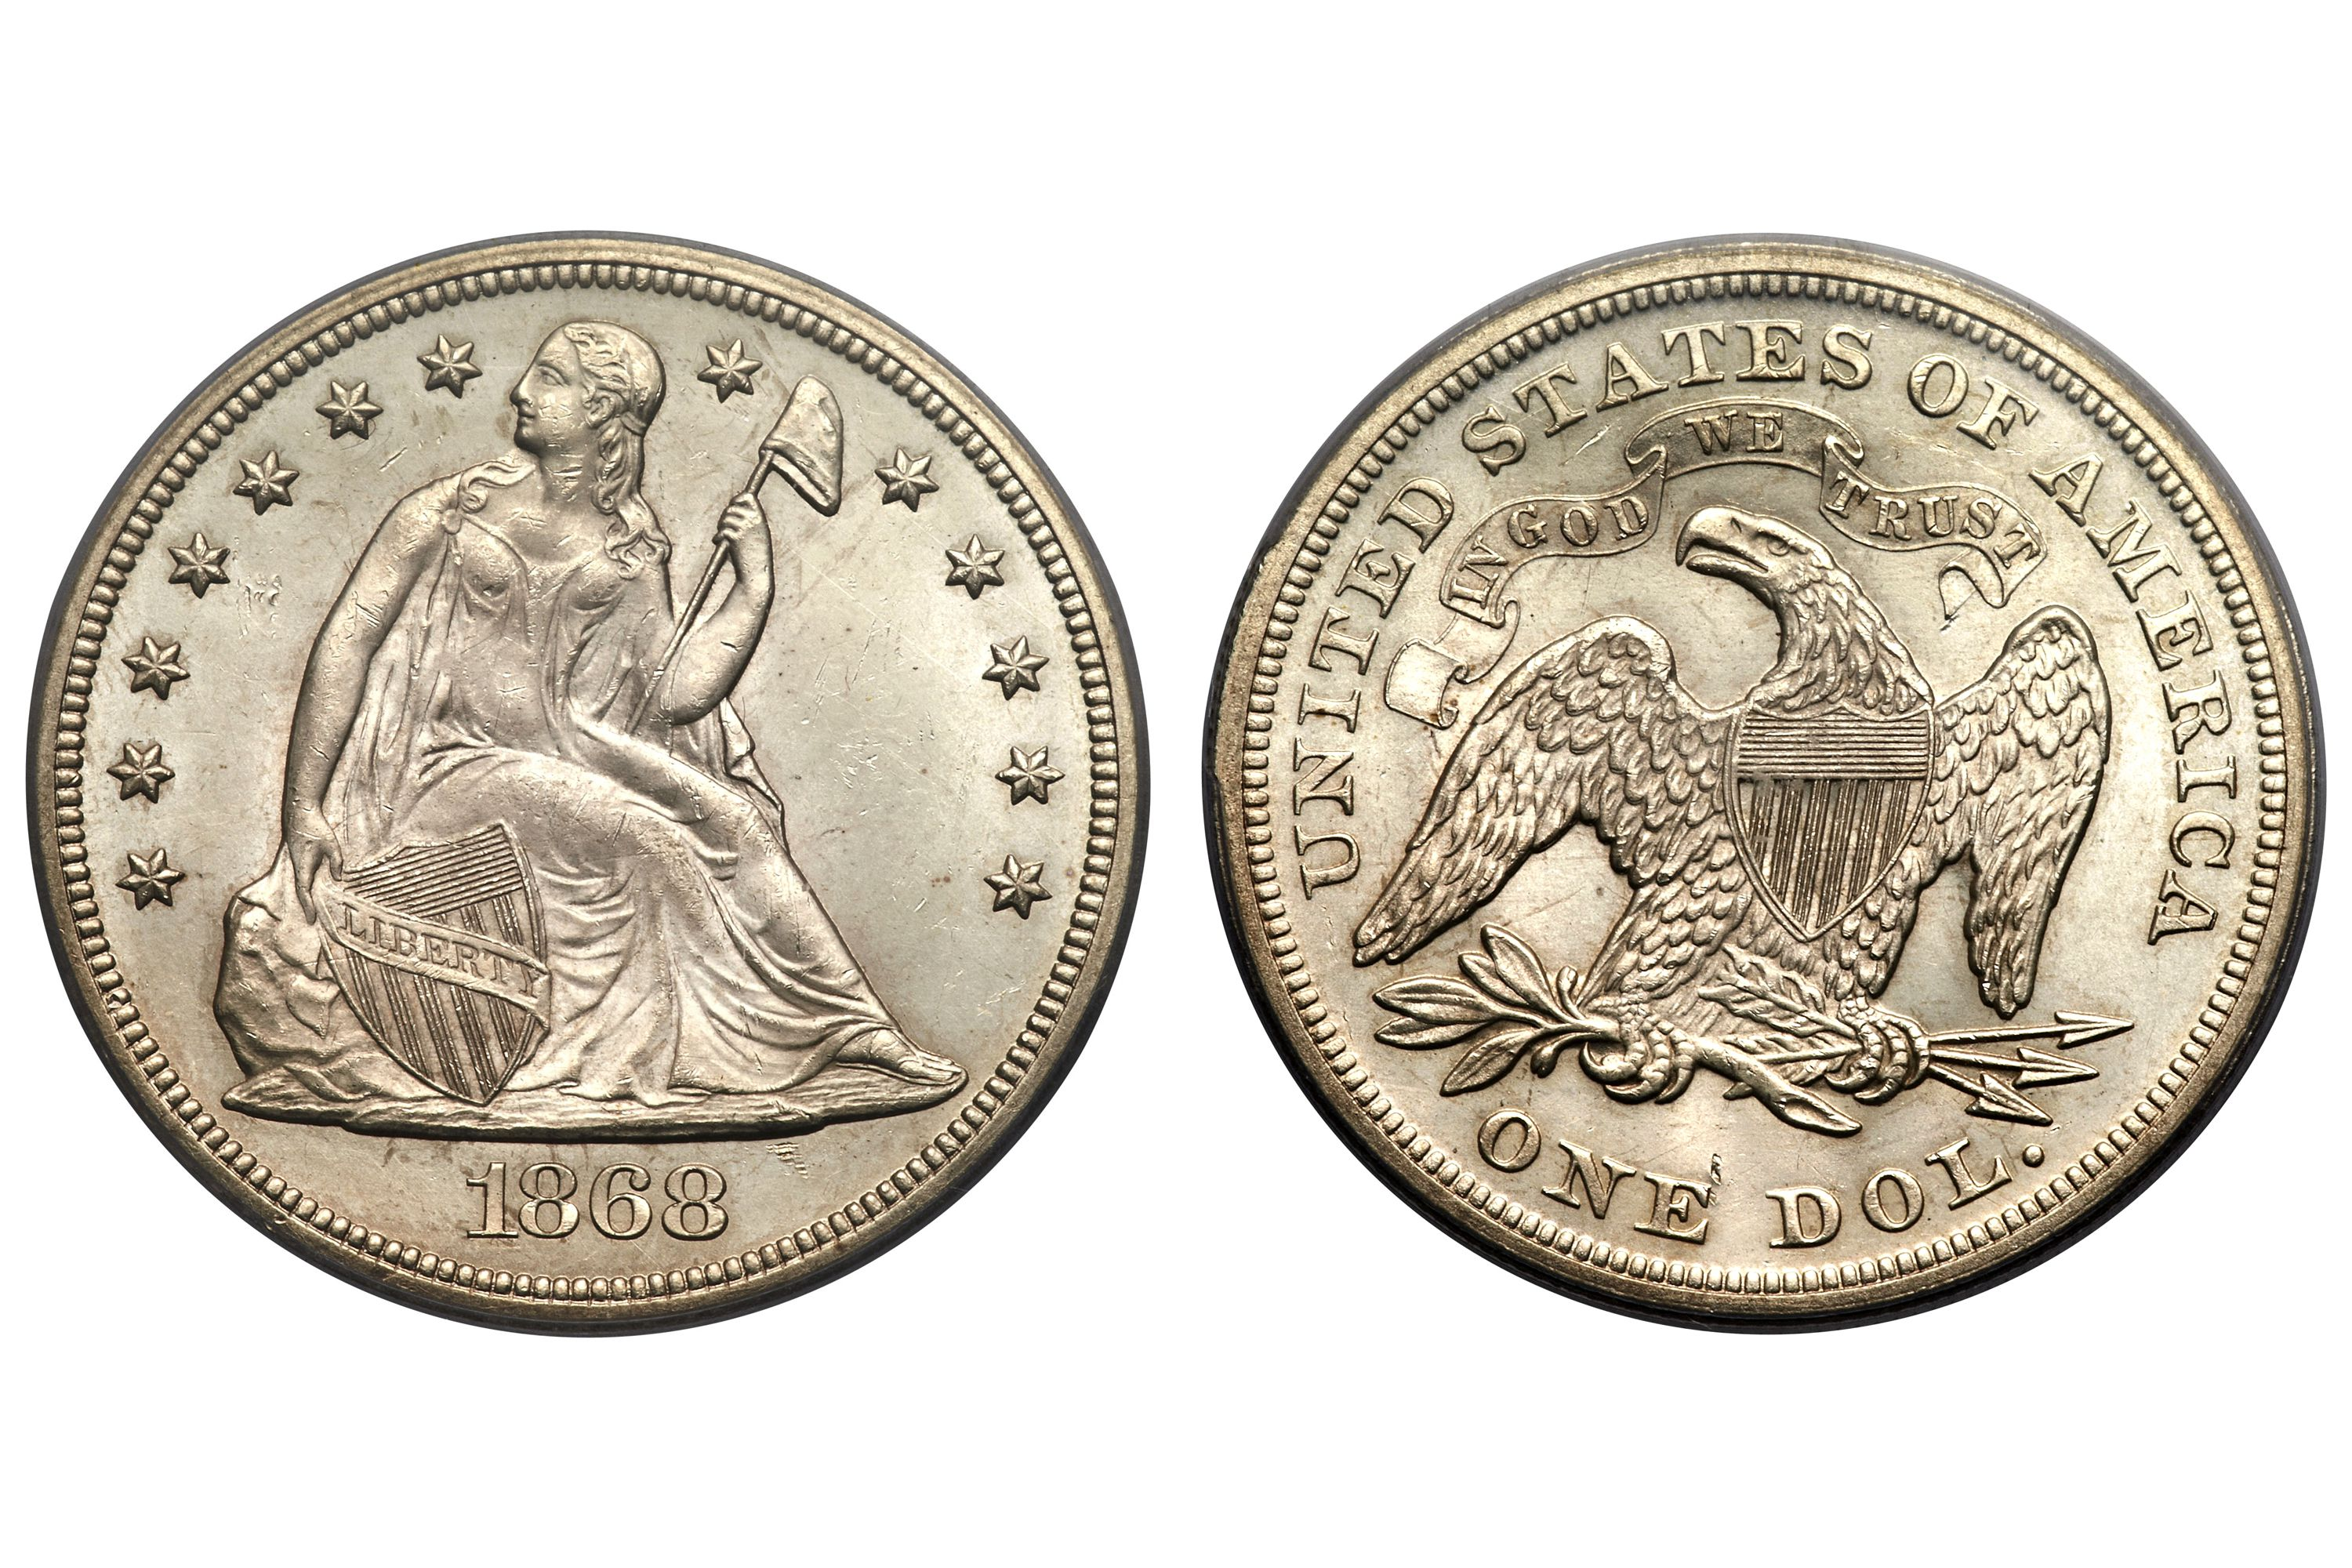 Seated Liberty Silver Dollar Values And Prices